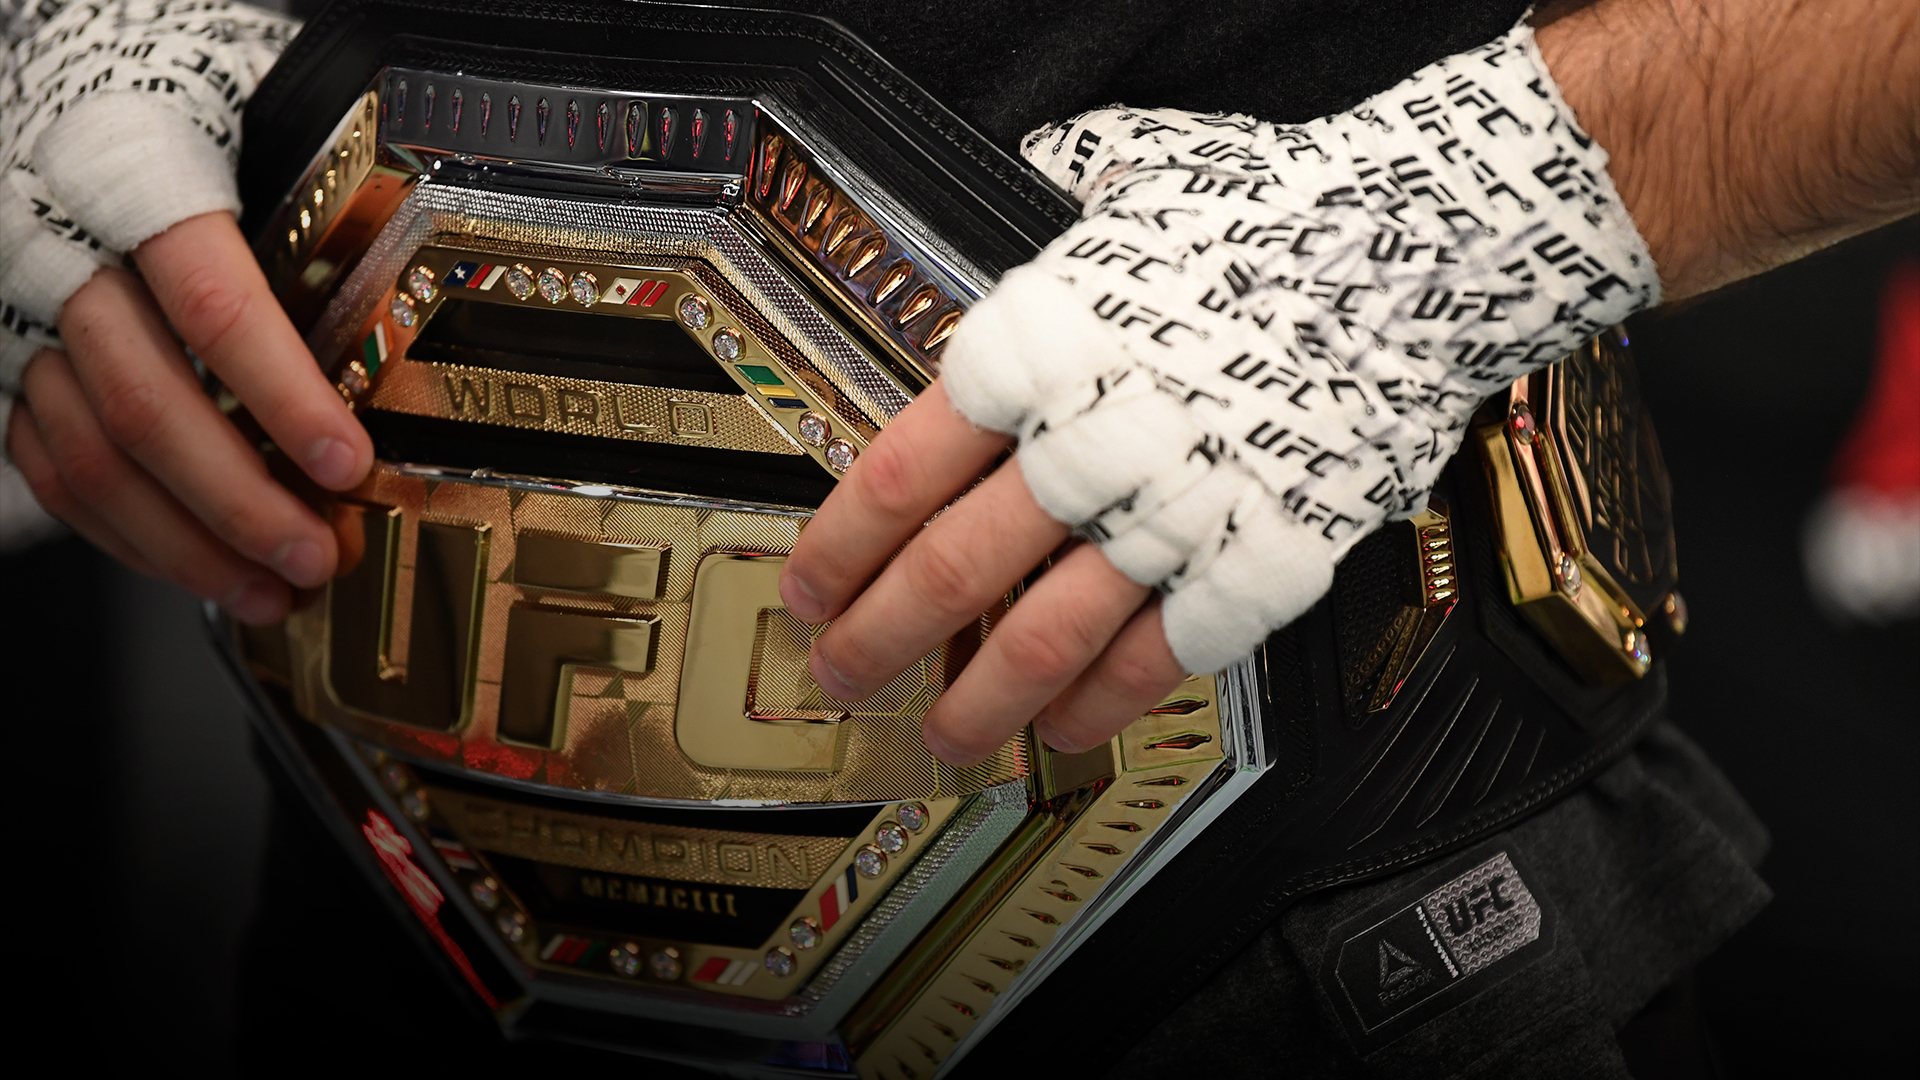 A detail shot of Khabib Nurmagomedov's belt after he announces his retirement in the Octagon after his victory over Justin Gaethje in their lightweight title bout during the UFC 254 event on October 25, 2020 on UFC Fight Island, Abu Dhabi, United Arab Emirates. (Photo by Josh Hedges/Zuffa LLC)